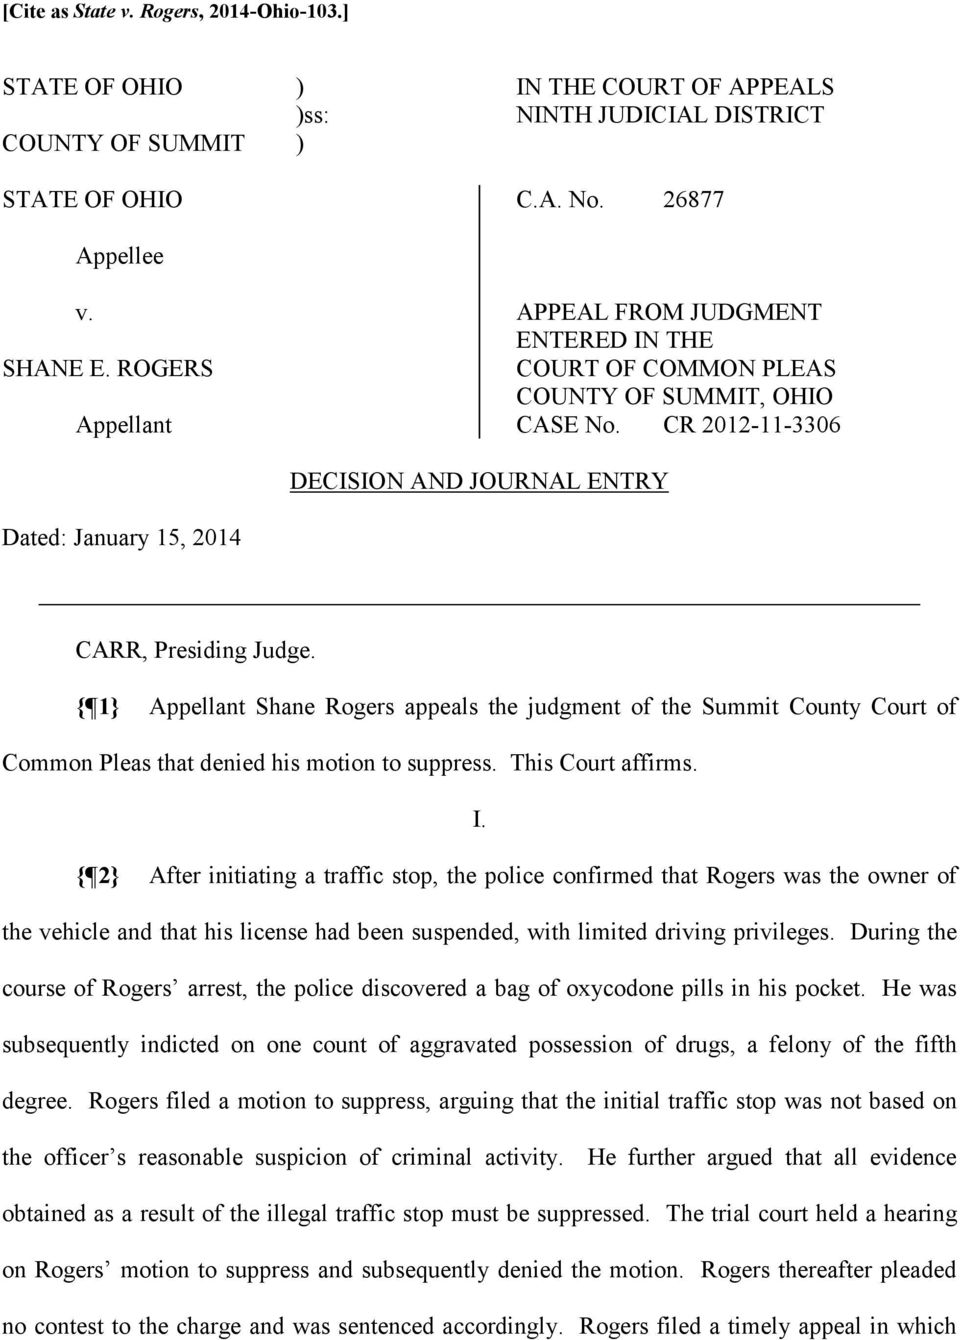 { 1} Appellant Shane Rogers appeals the judgment of the Summit County Court of Common Pleas that denied his motion to suppress. This Court affirms. I.